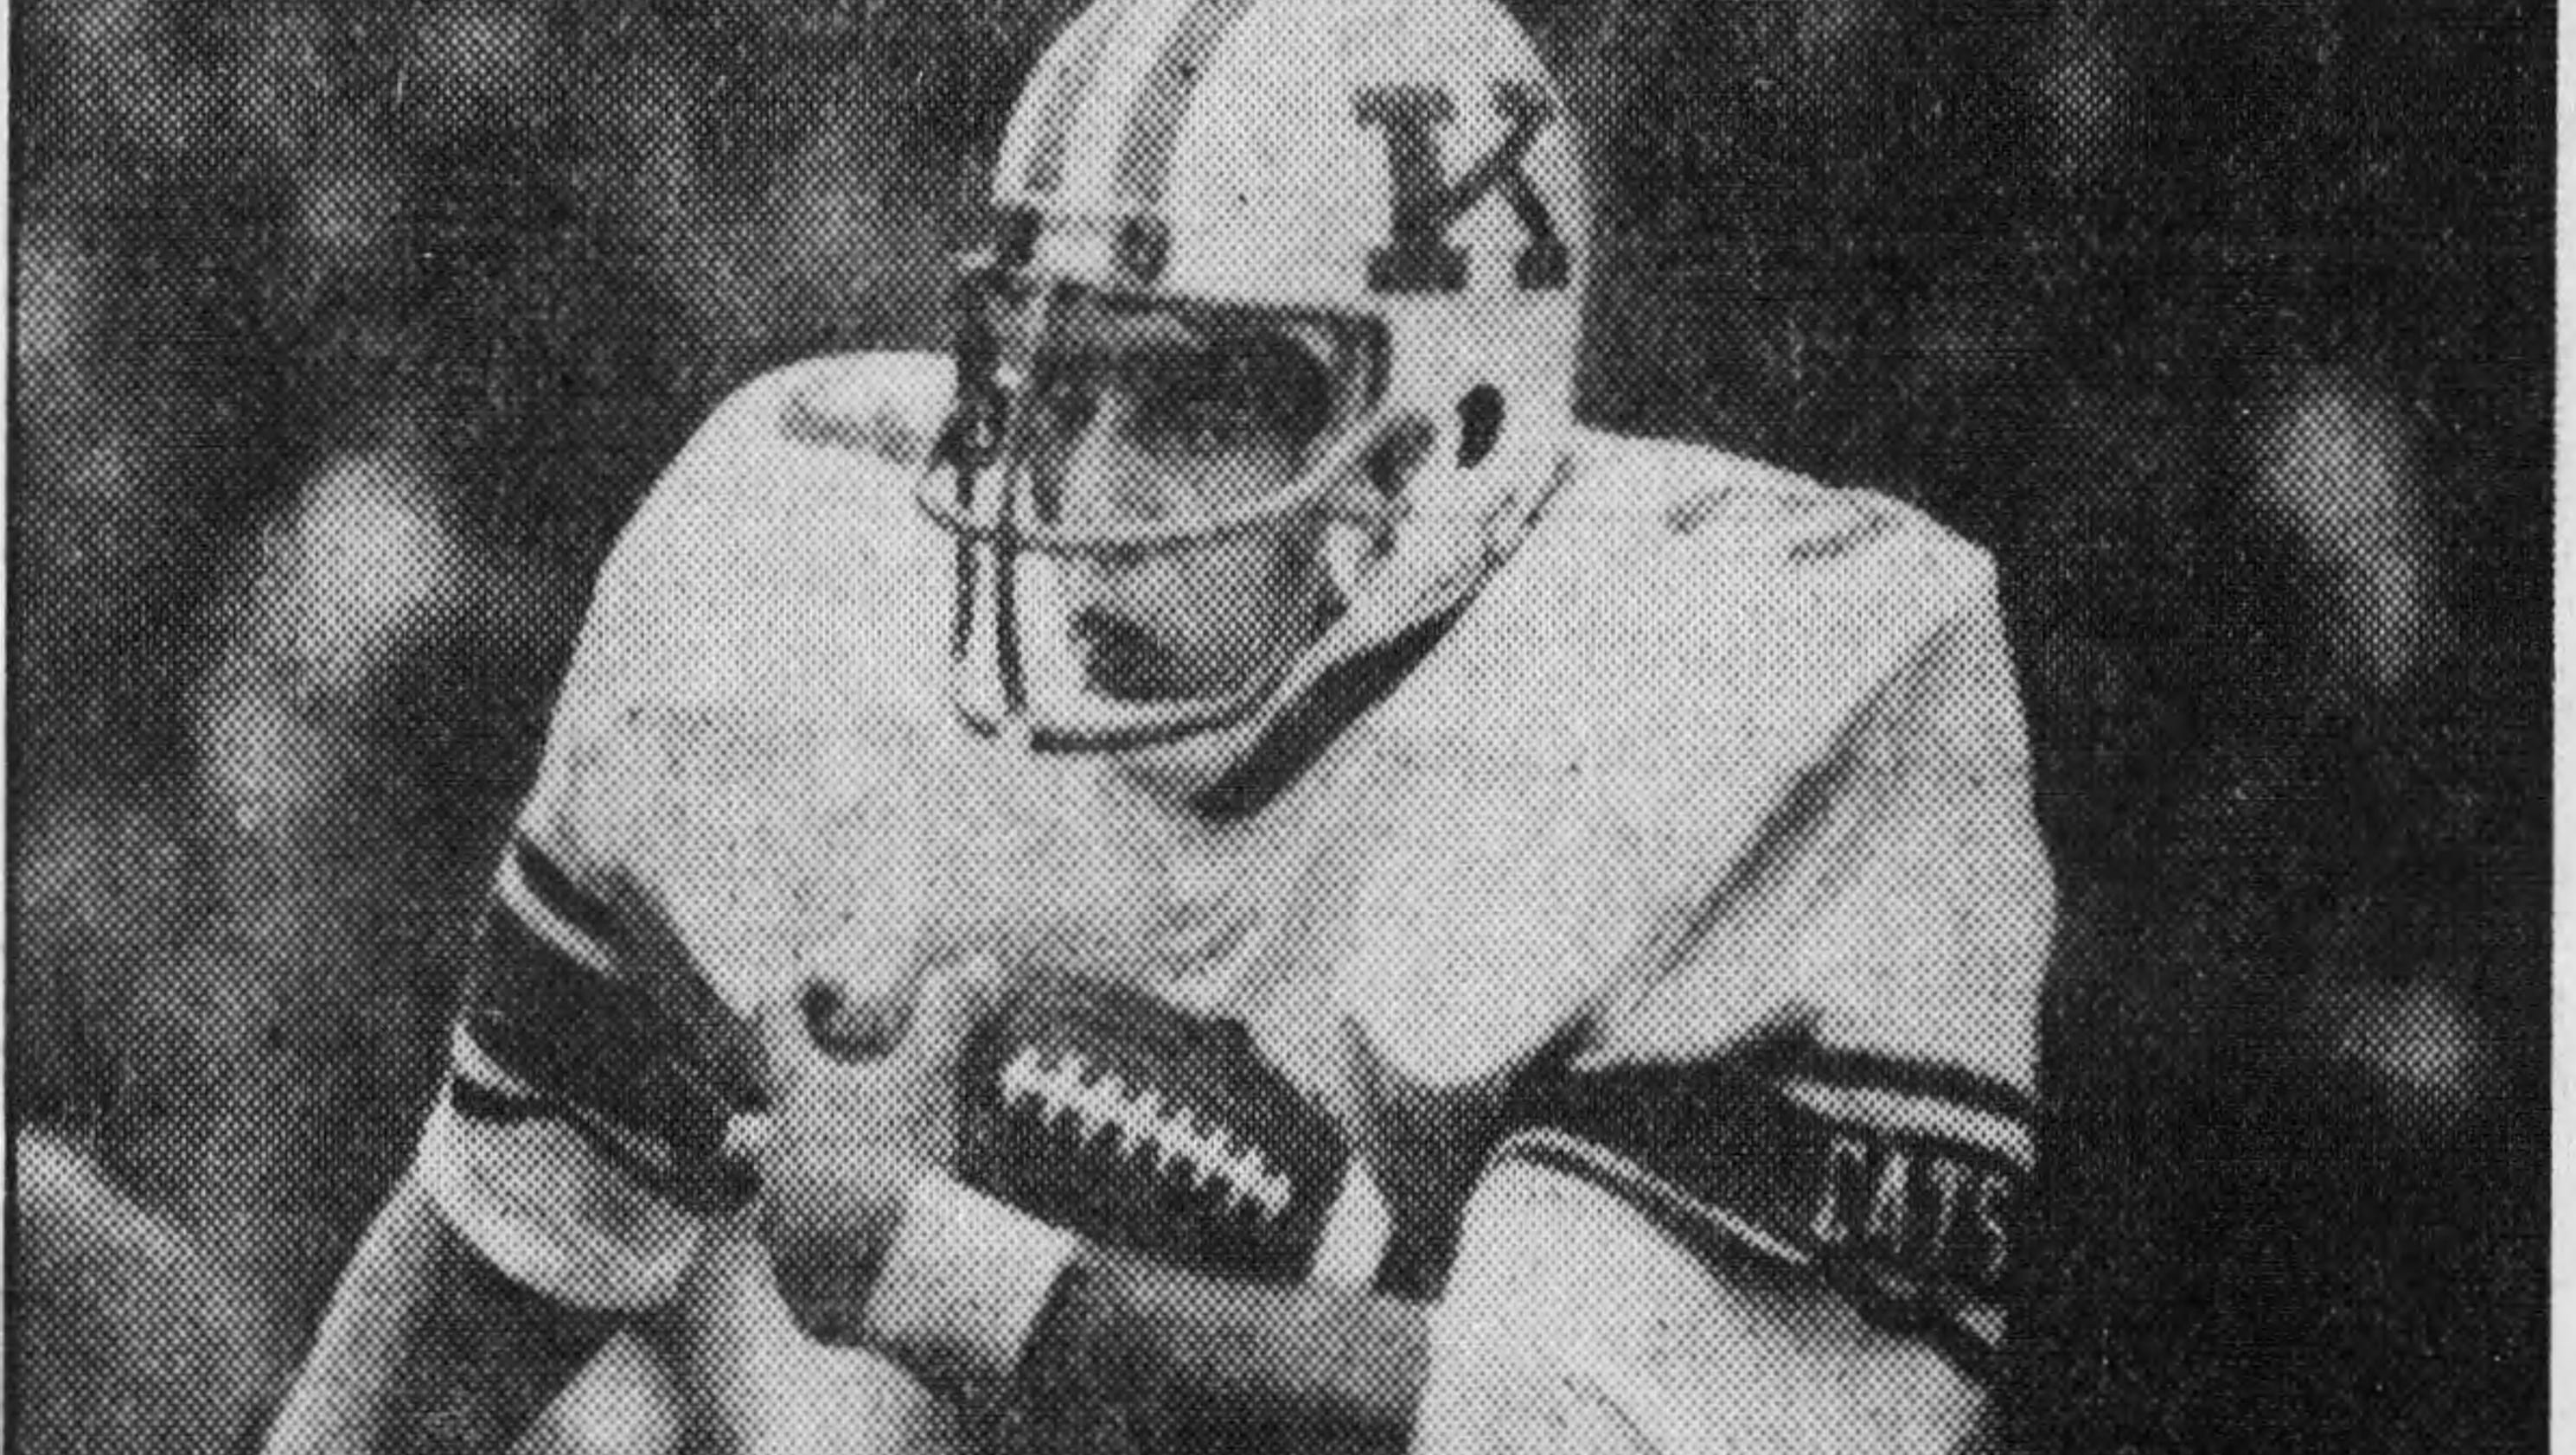 636416681685507515-the-courier-journal-wed-oct-26-1983-